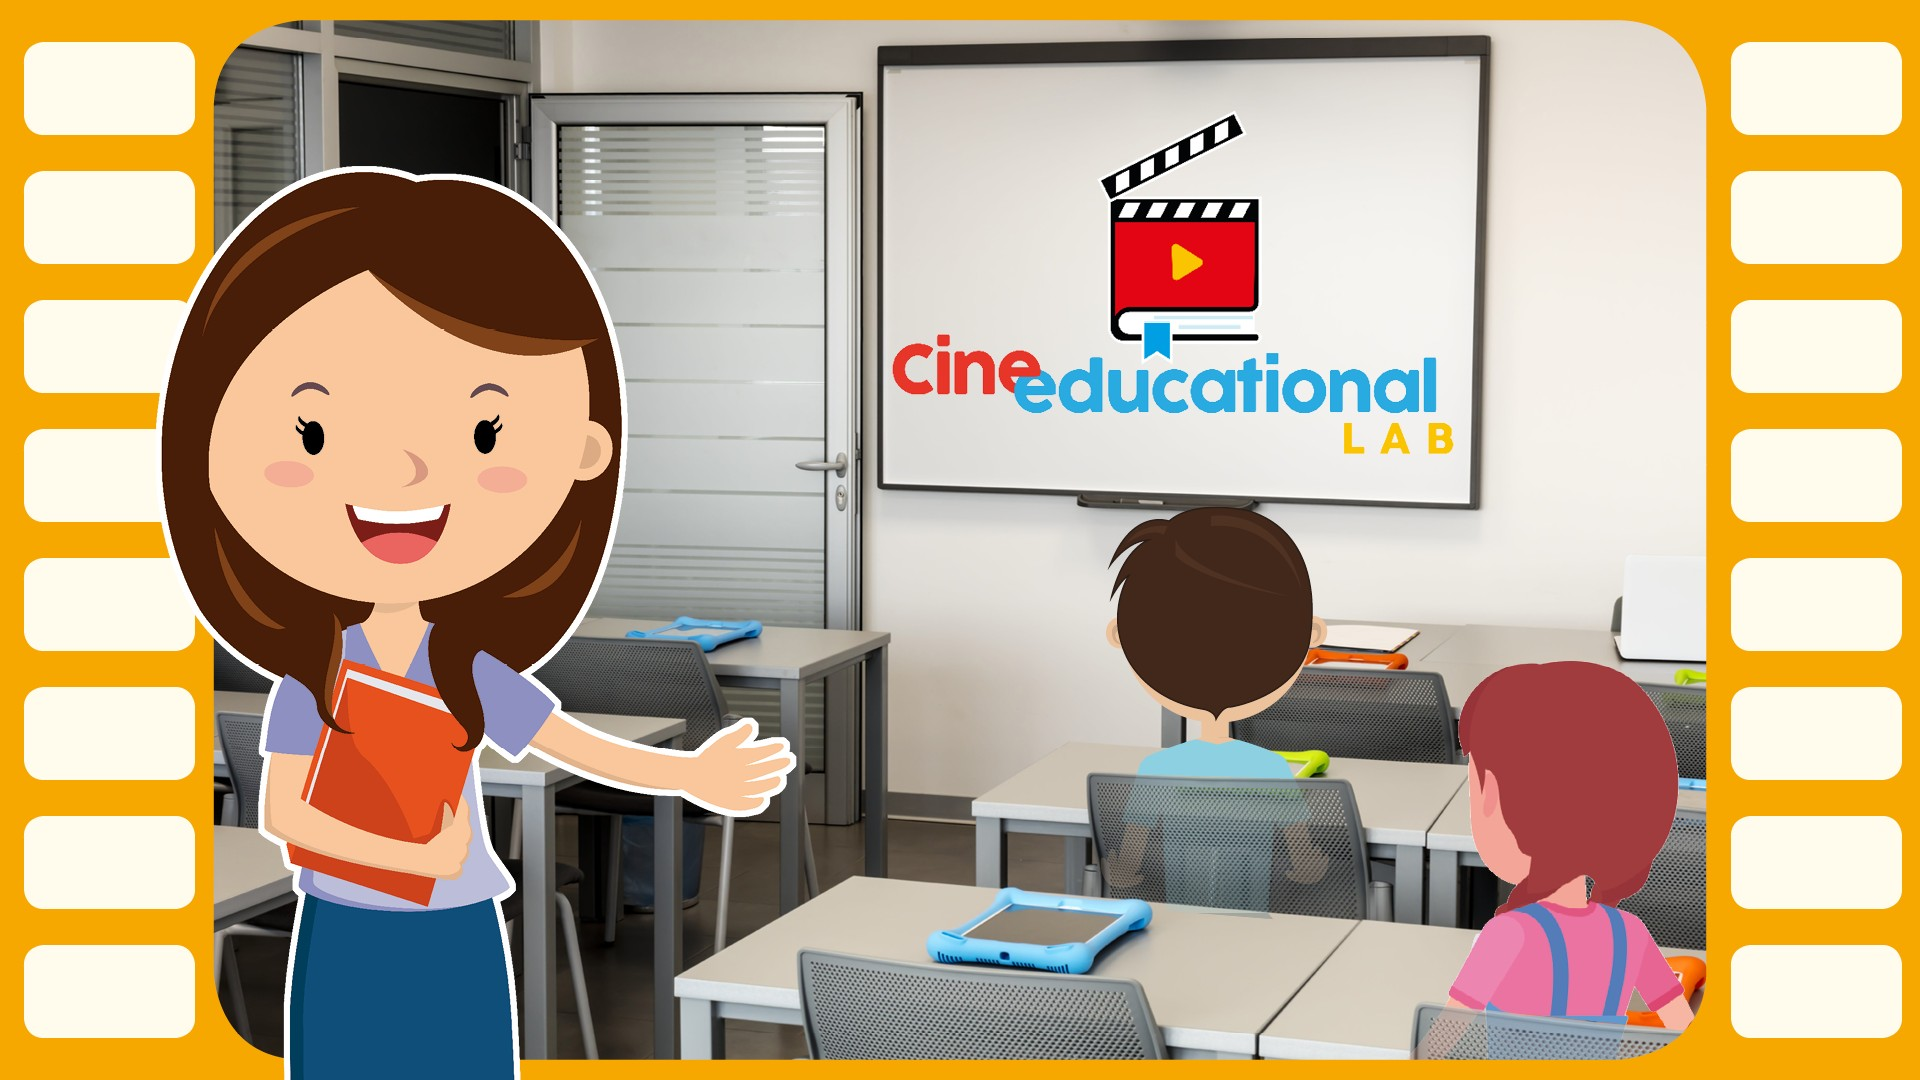 Foto Cineducational lab